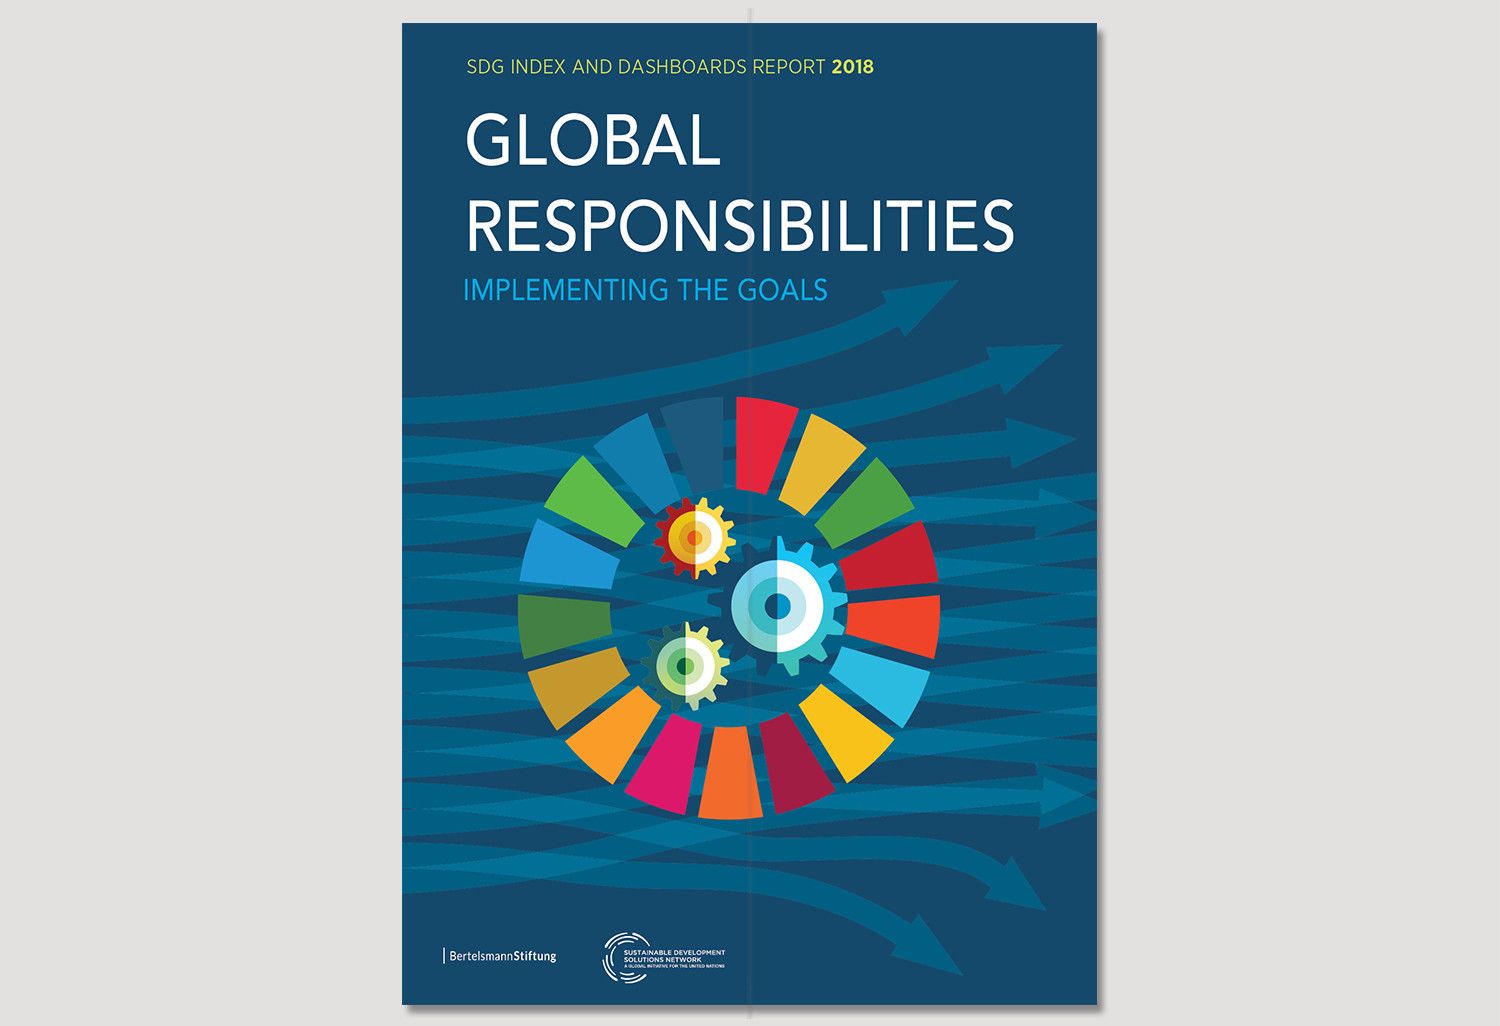 01_SDGS 2018 Cover website.jpg